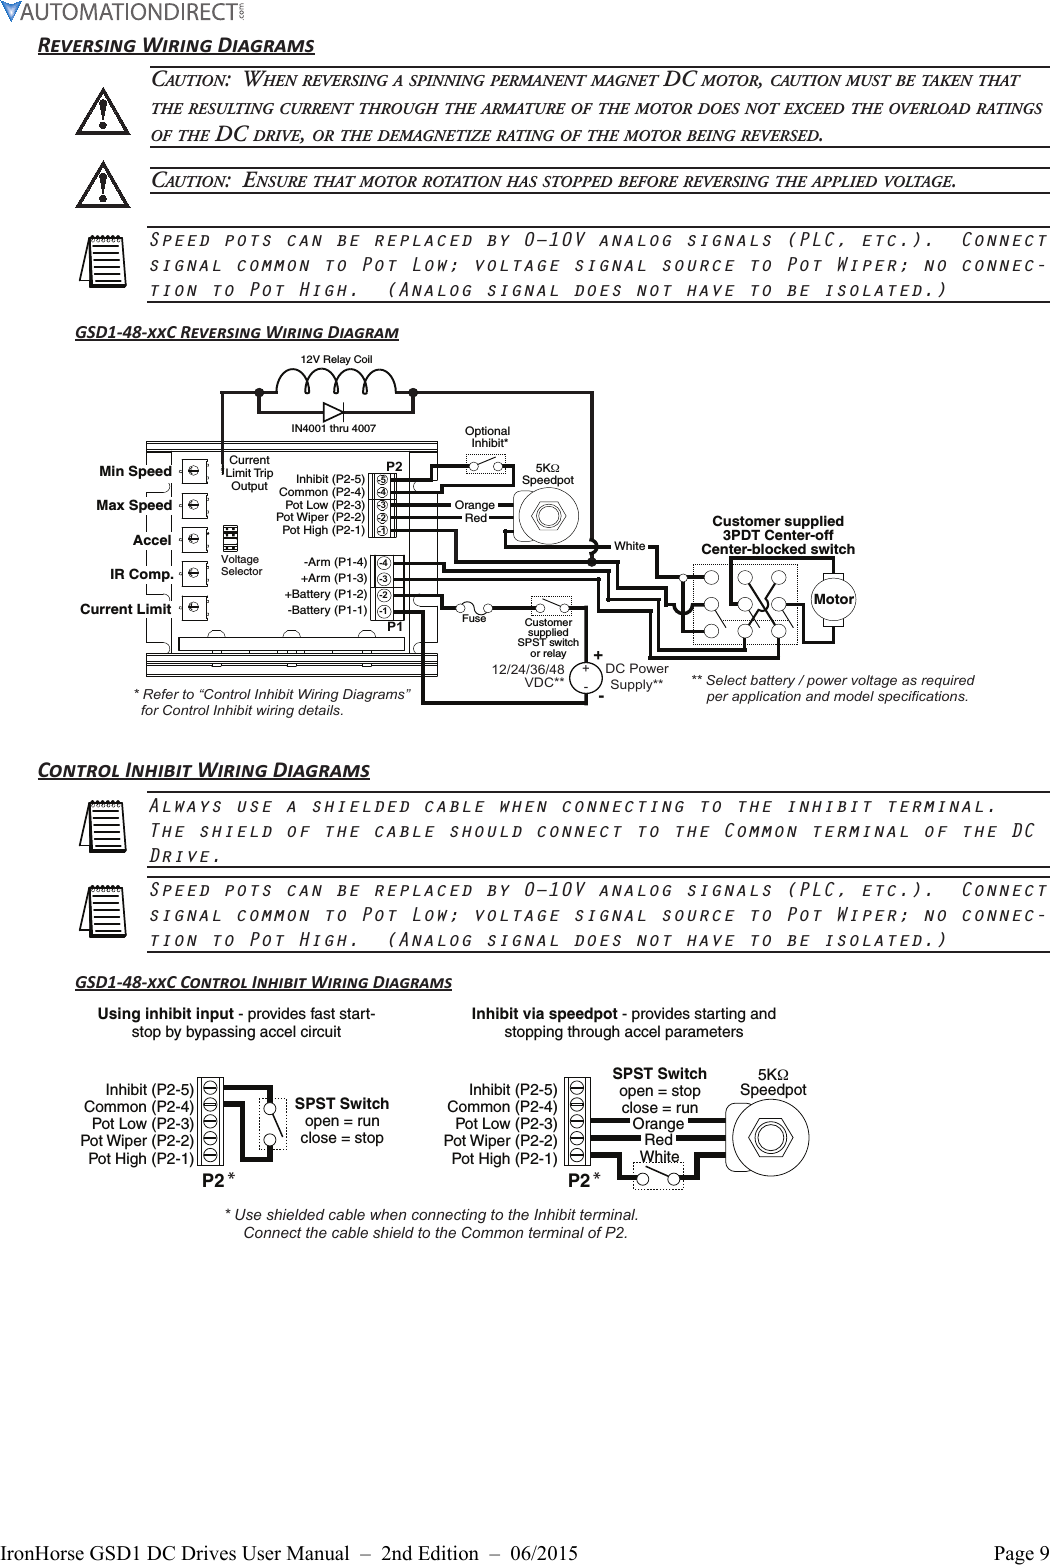 Gsd1 User Manual 48 Um Dc Drive Wiring Diagram Page 9 Of 12